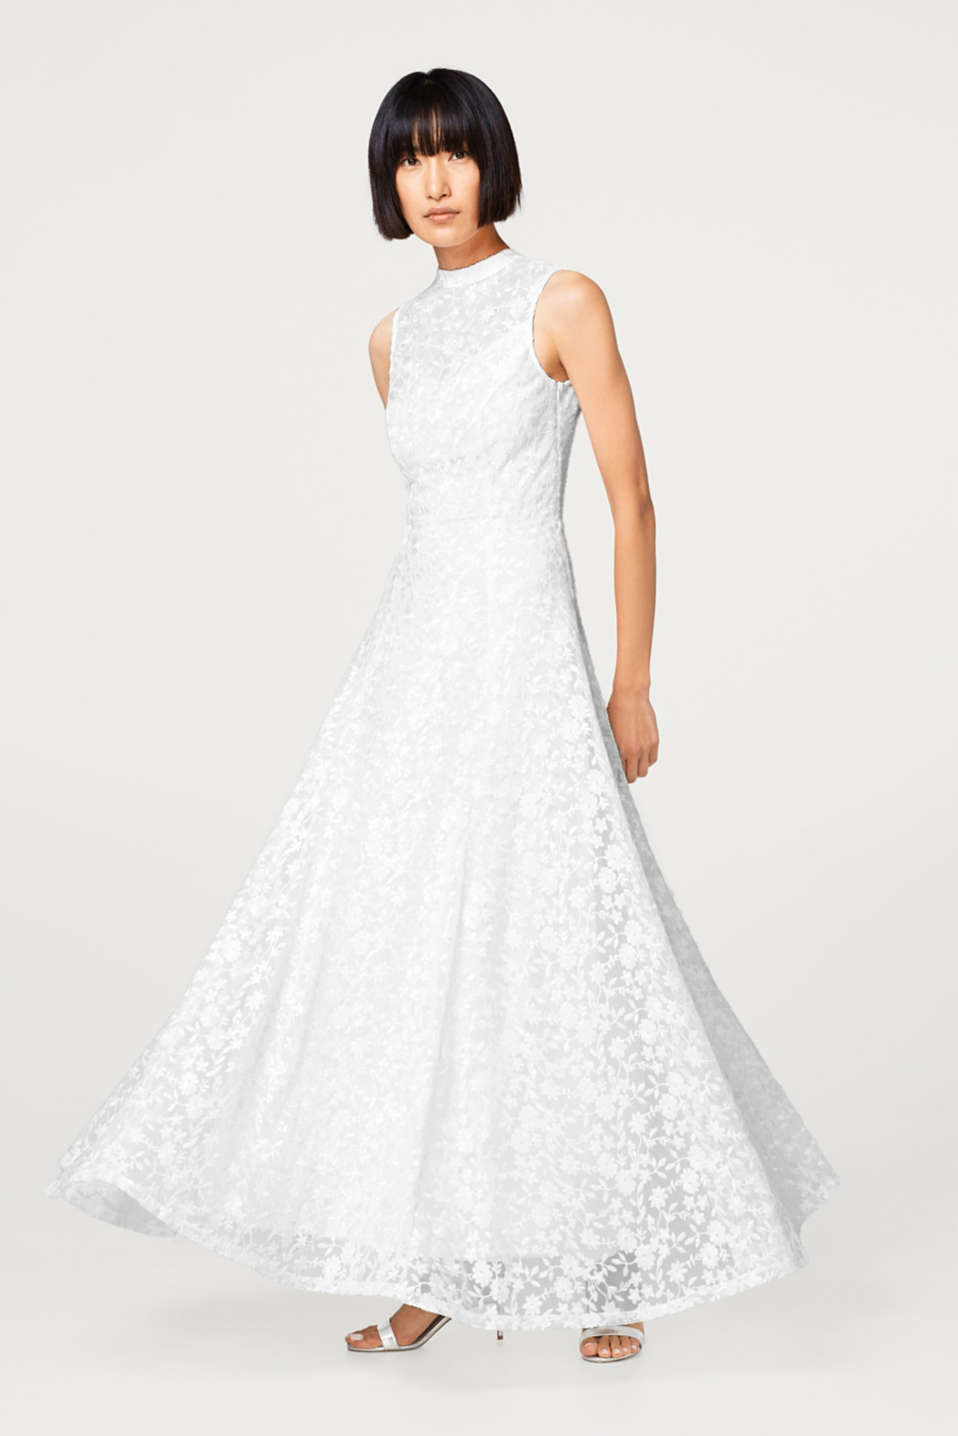 Esprit - Wedding dress in floral embroidered mesh